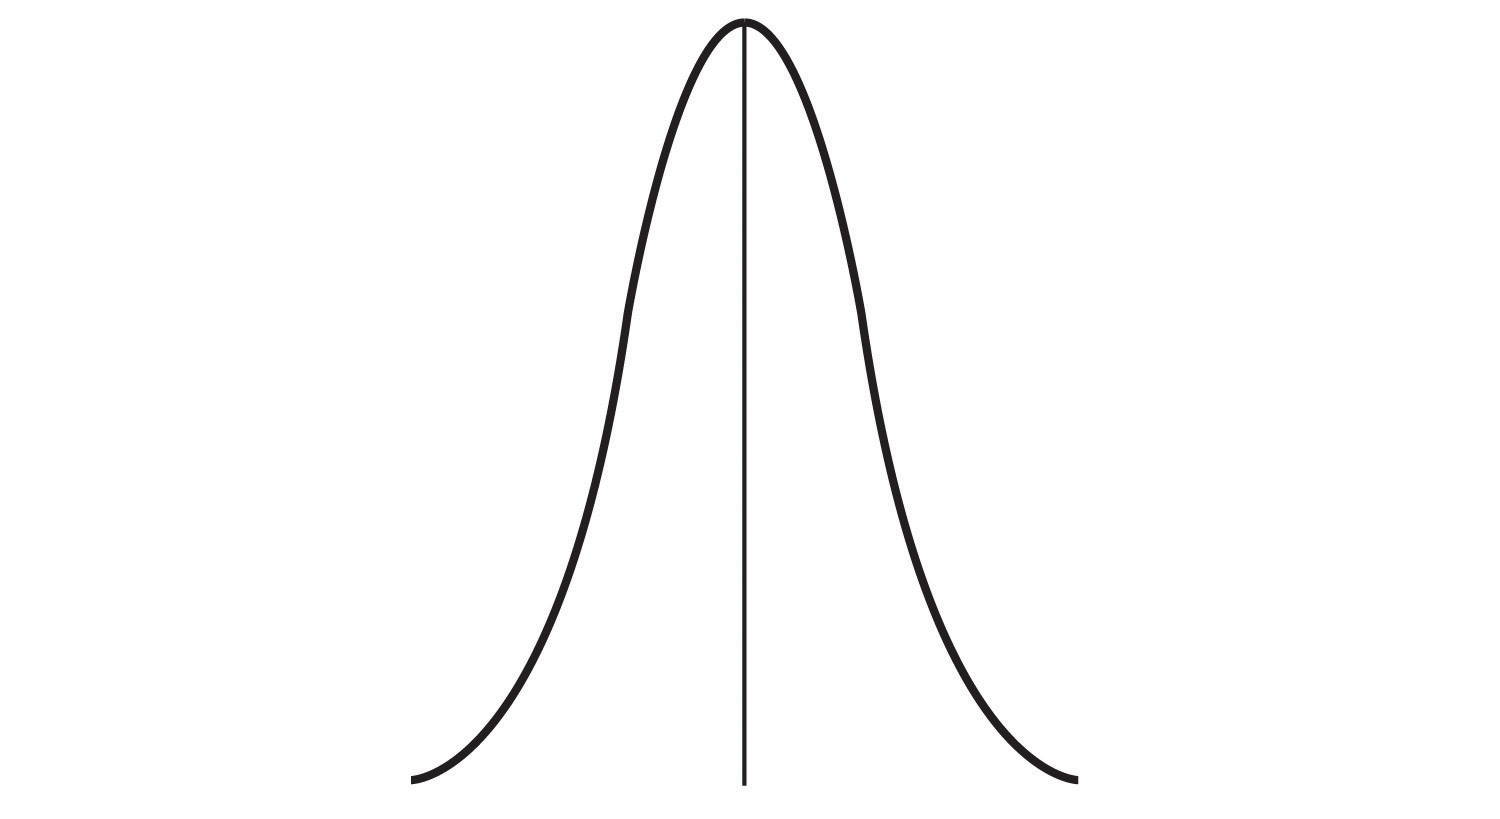 This line graph forms a narrow bell shape around the central tendency.